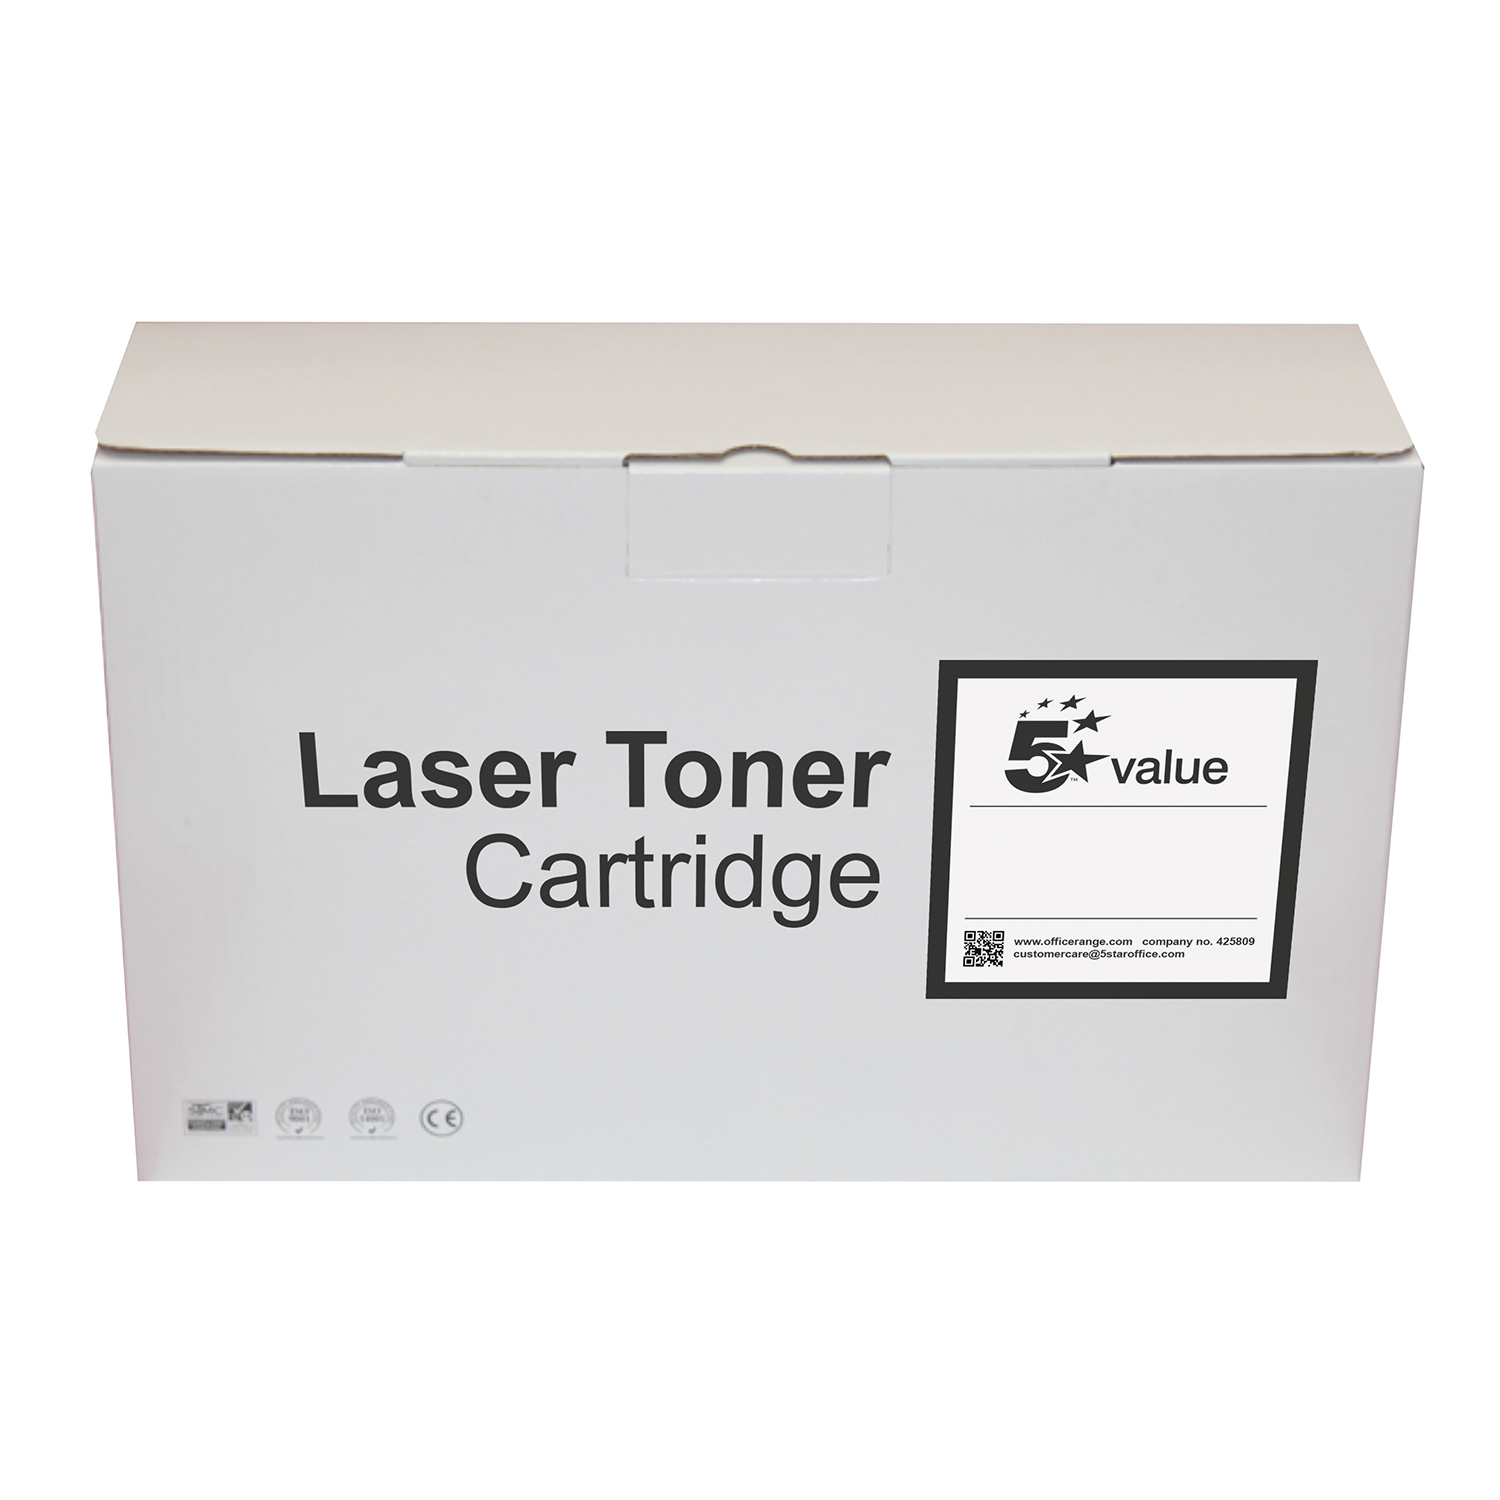 5 Star Value Remanufactured Laser Toner Cartridge Page Life 2000pp Black HP No. 12A Q2612A Alternative